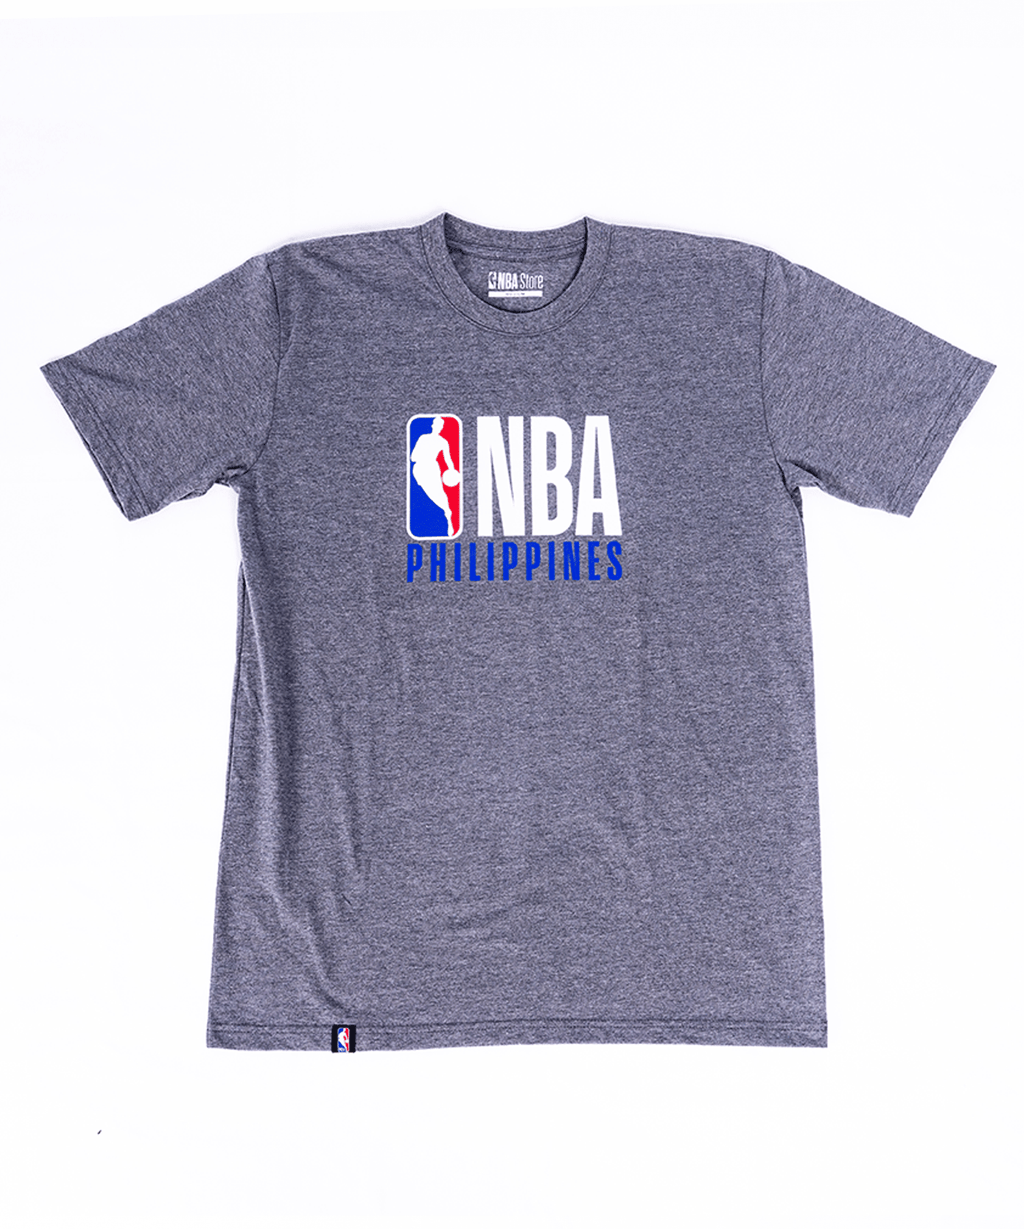 NBA Philippines Statement Tee - Grey